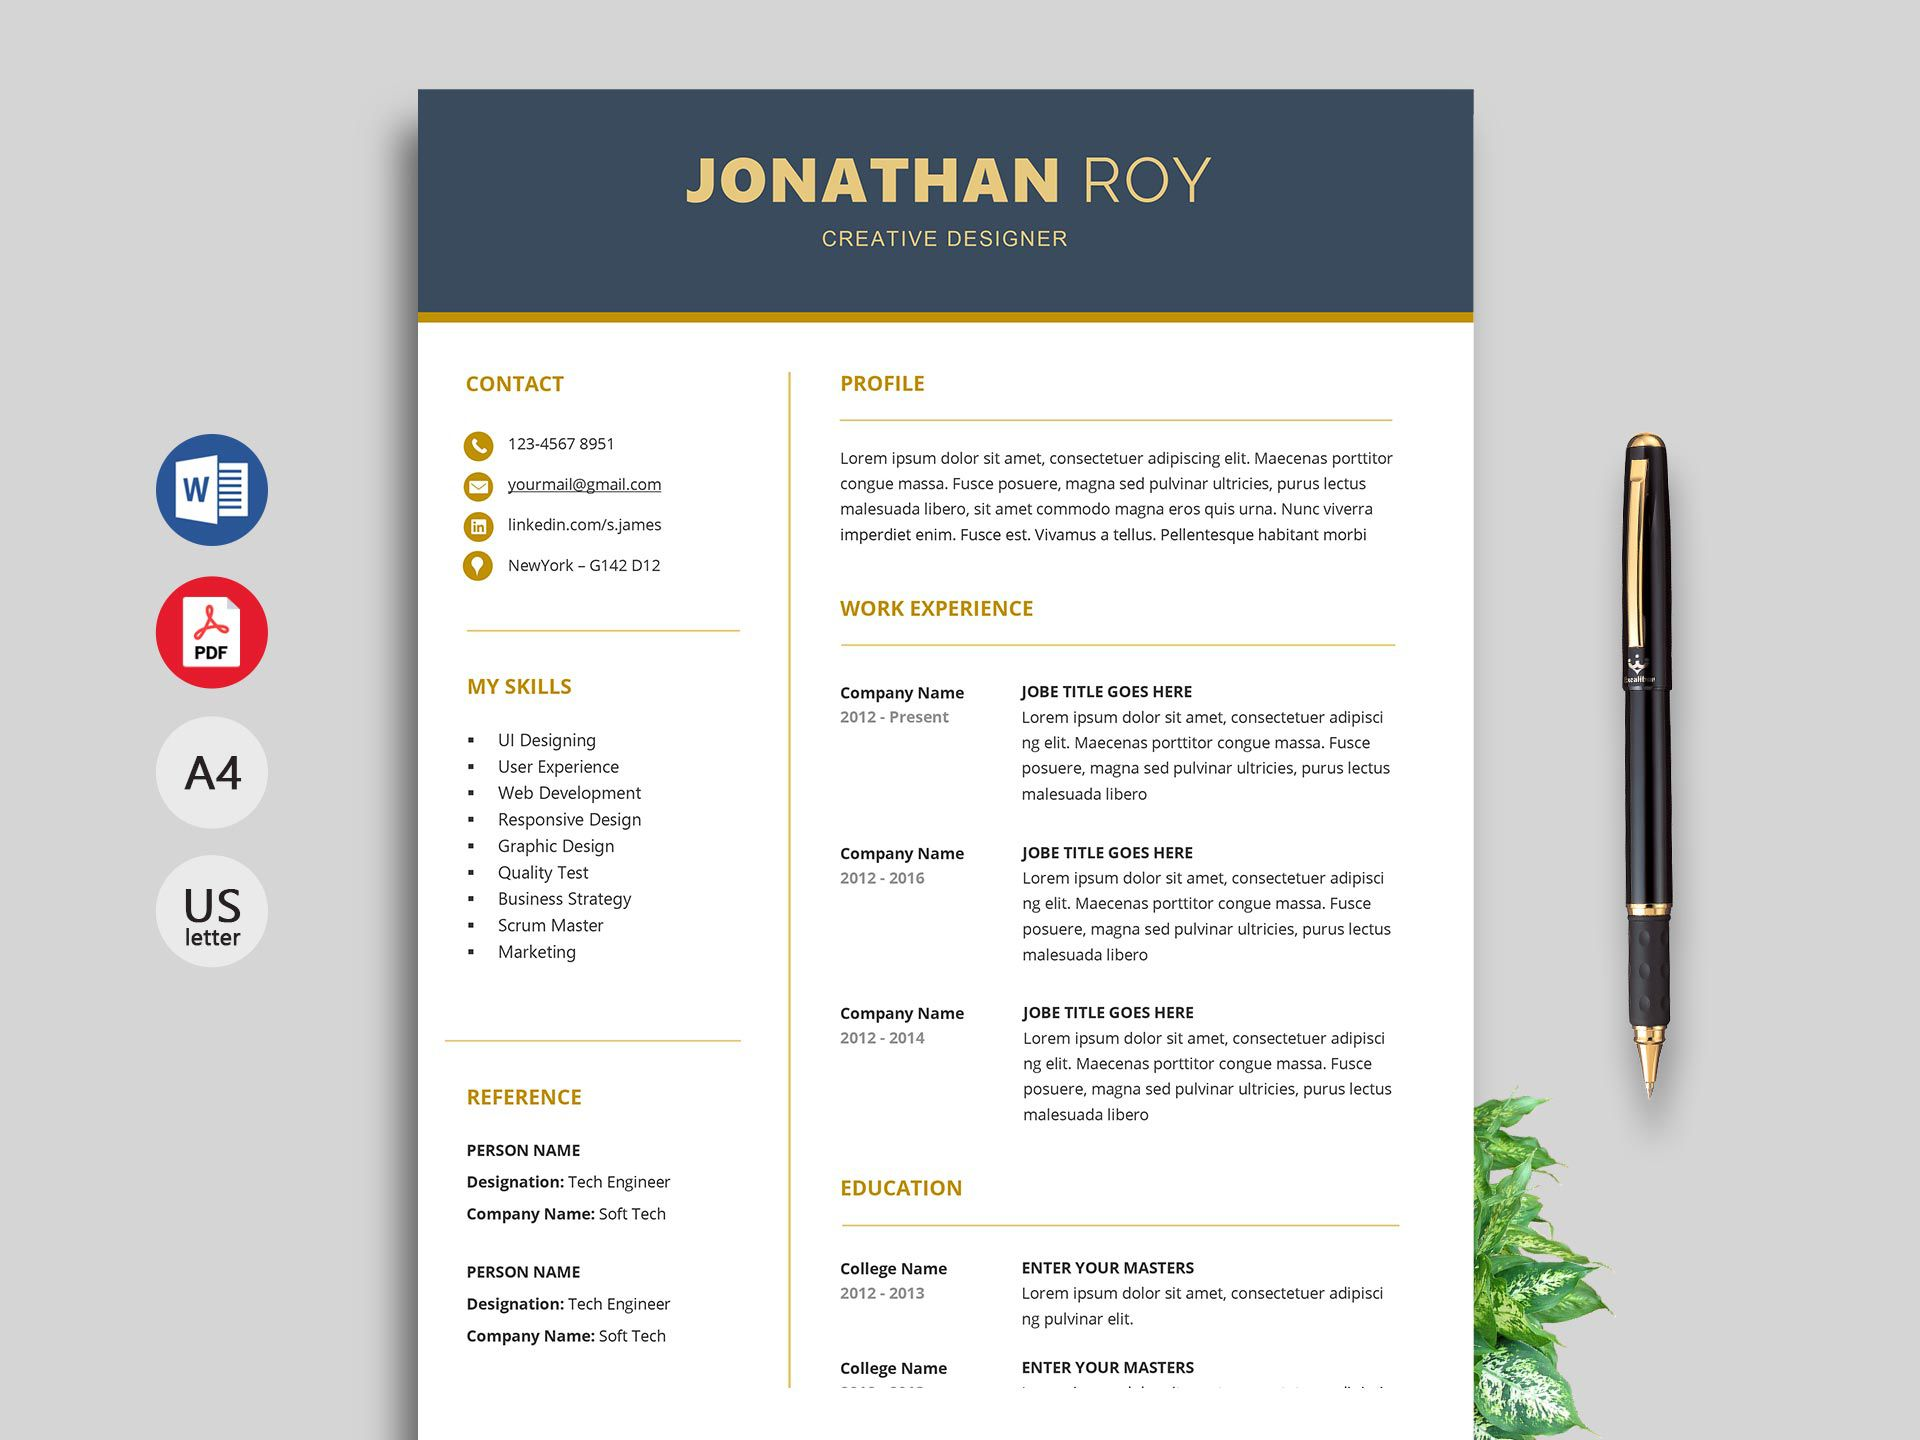 005 Archaicawful Download Template For Word Idea  Wordpres Free Resume 2007 Addres LabelFull